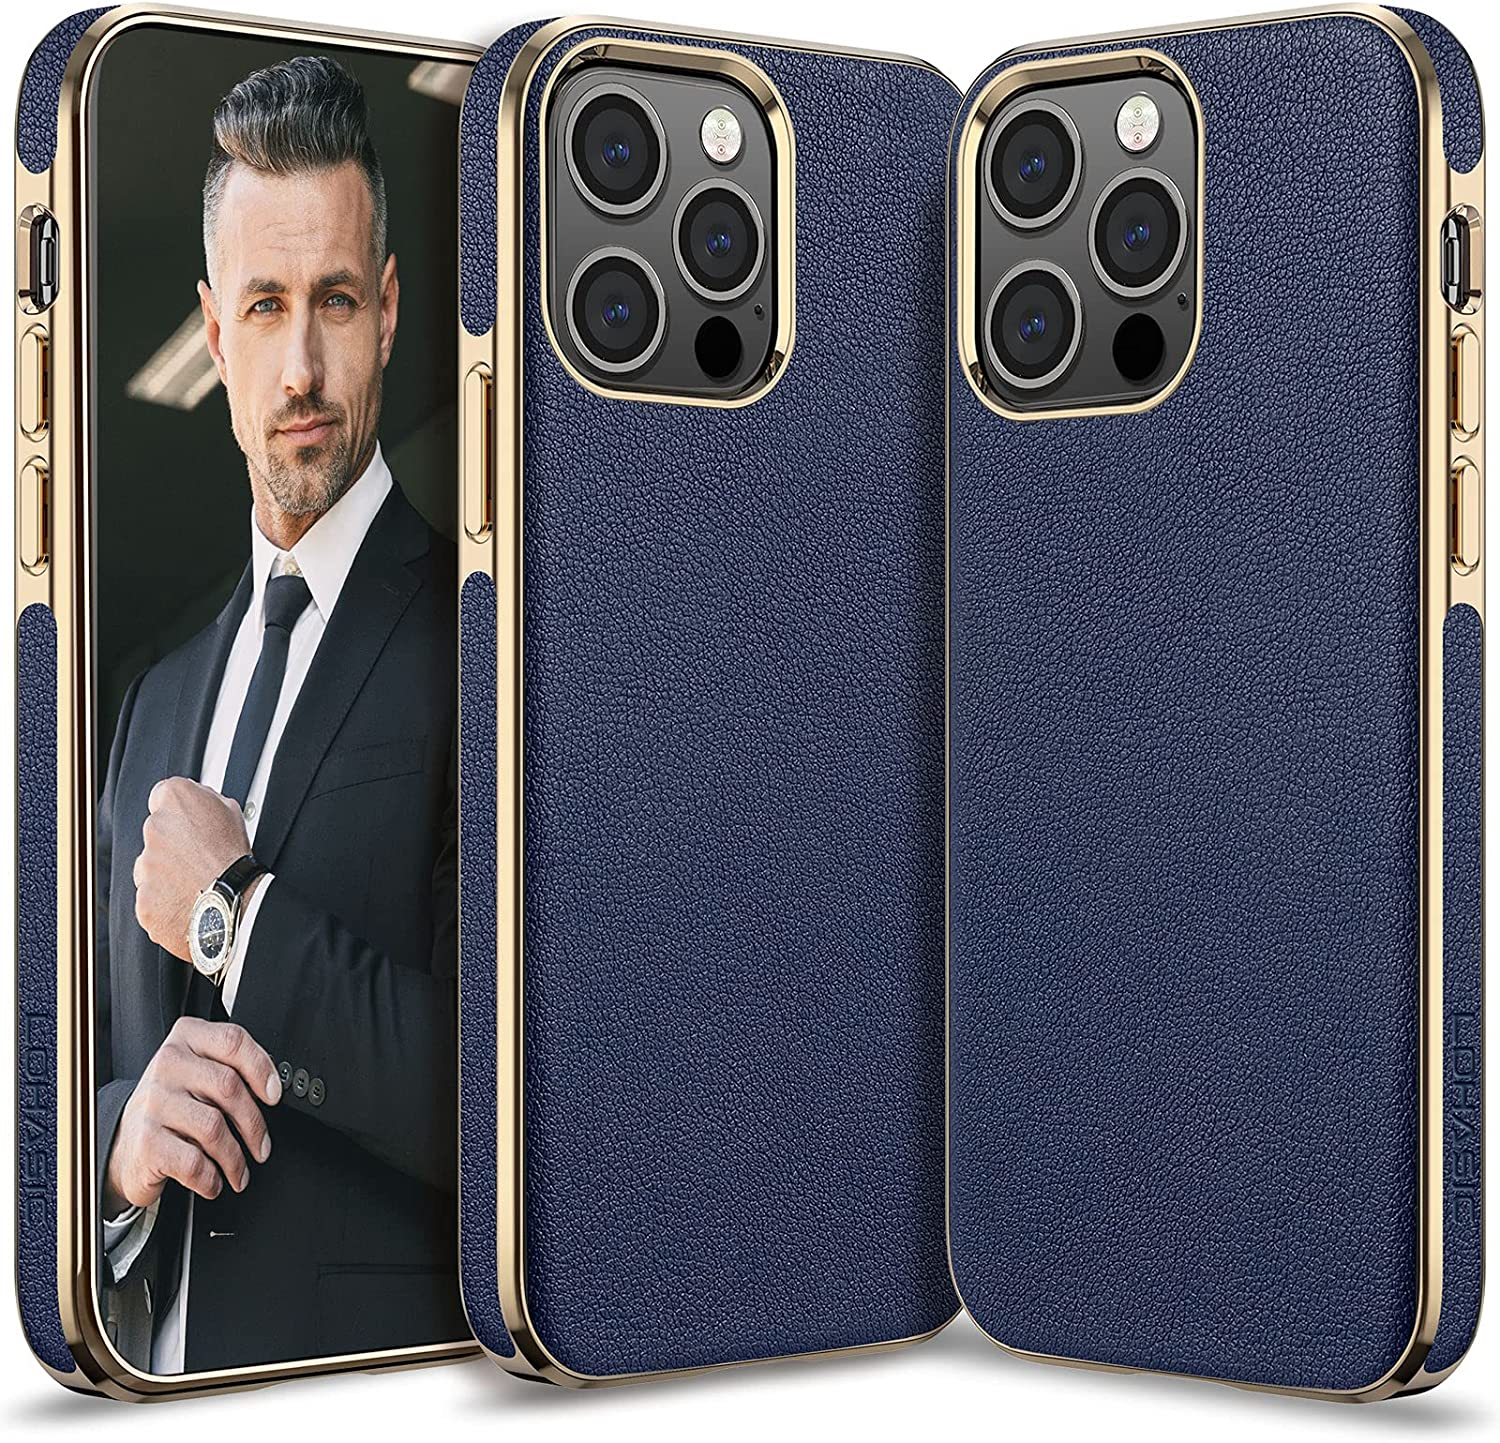 LOHASIC for iPhone 13 Pro Max Case Men, Phone Cover Women PU Leather Elegant Classy Business Slim Full Body Protective Shockproof Non-Slip Anti-Scratch Soft Grip Bumper 6.7 Inch 2021 Blue